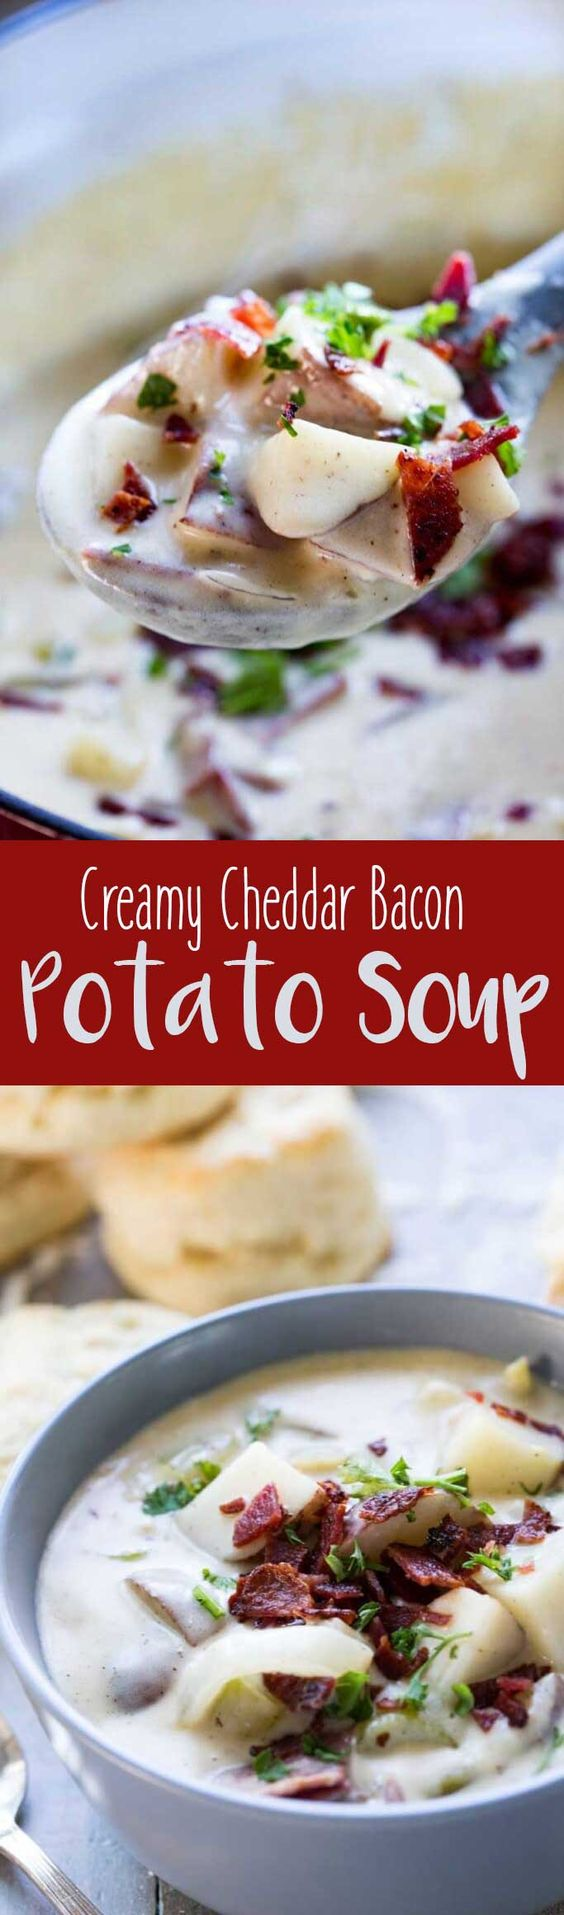 Creamy Cheddar Bacon Potato Soup is the best way to welcome Fall! #ad ...